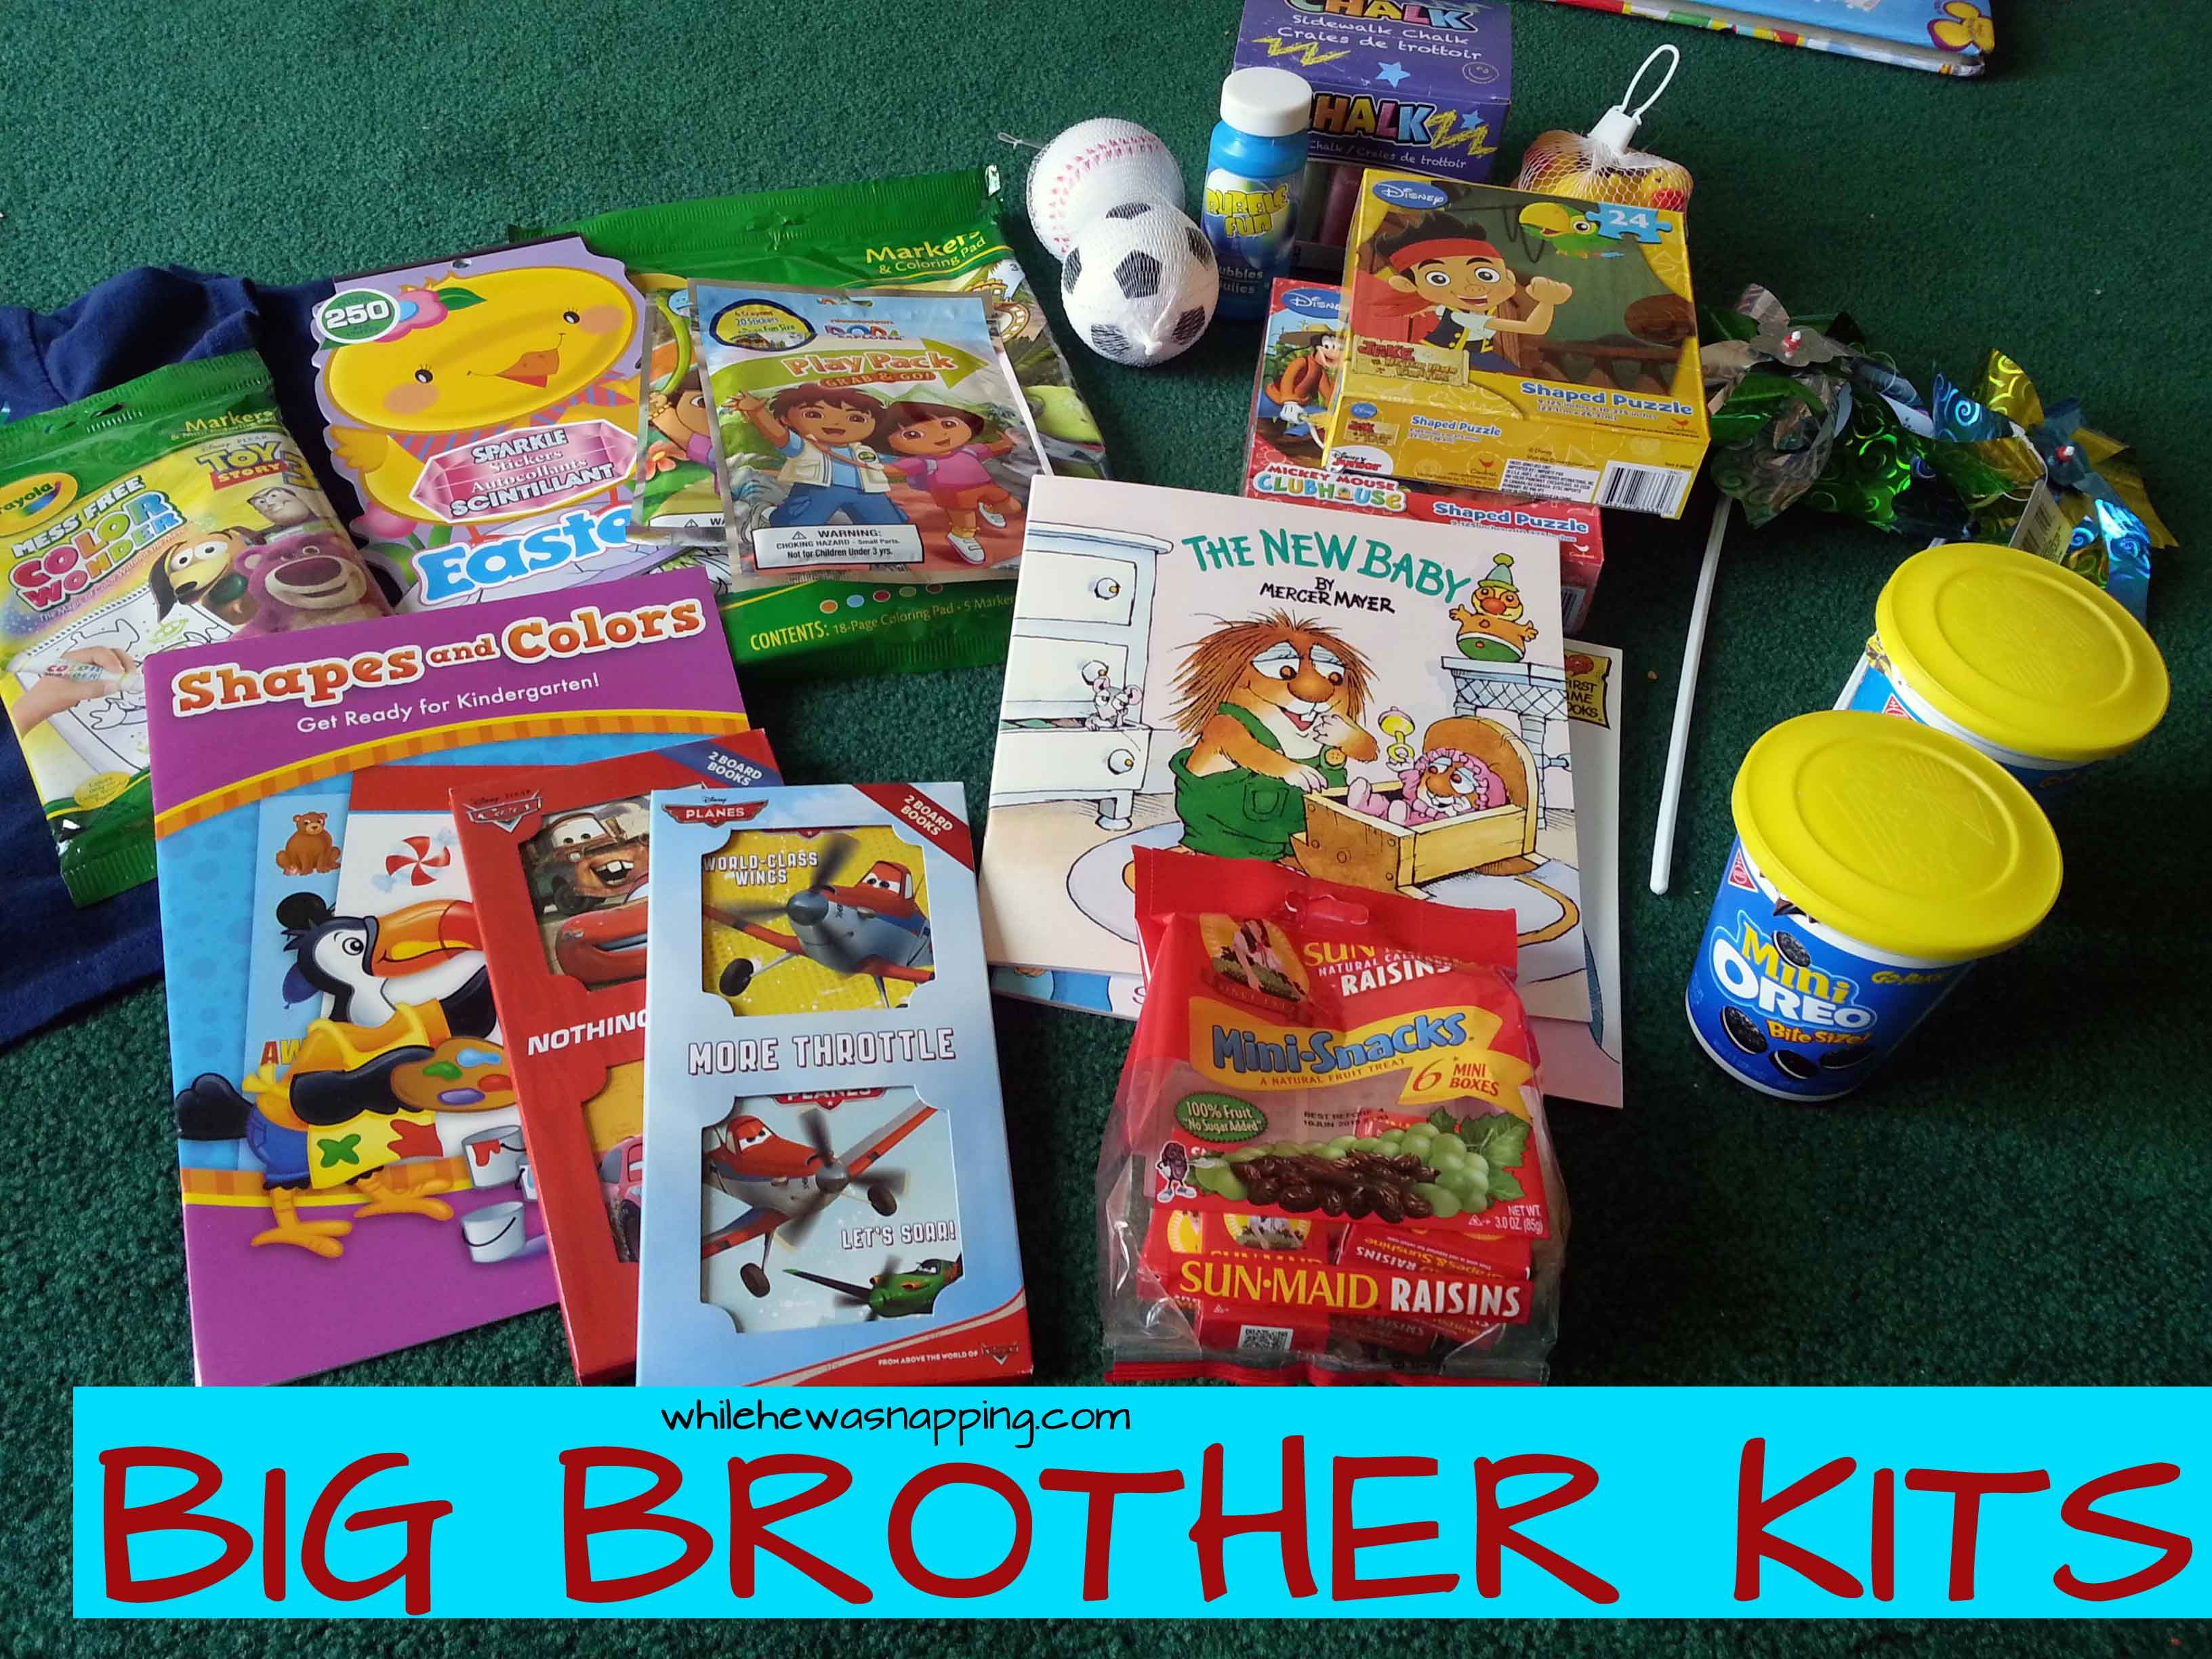 Big Brother Kits | Mabey She Made It